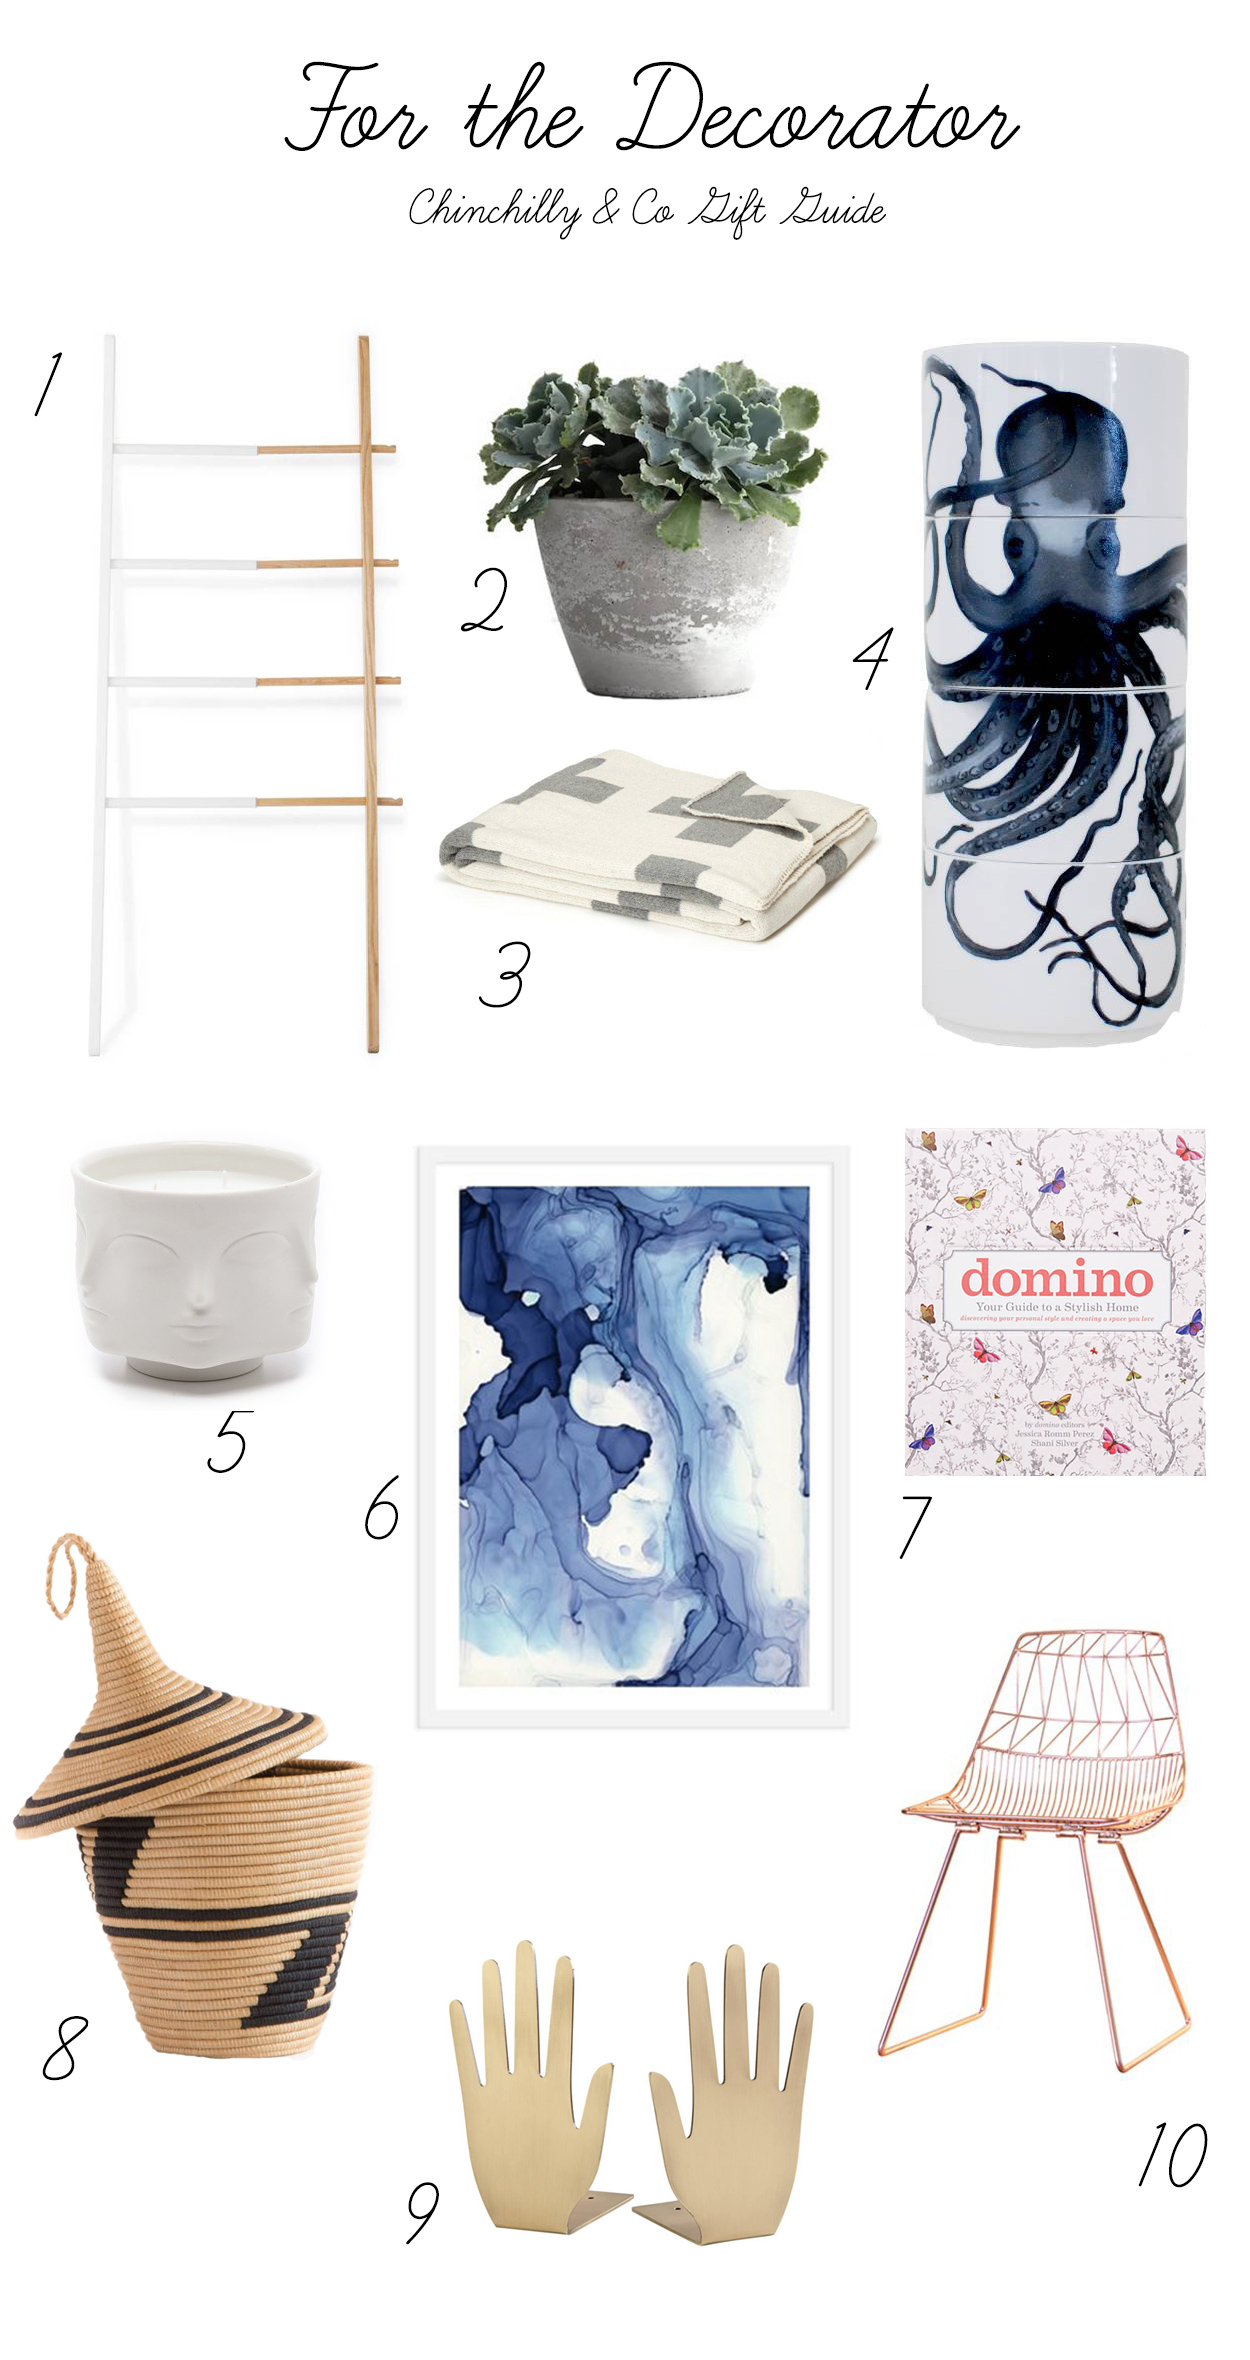 giftguide-for-the-decorator